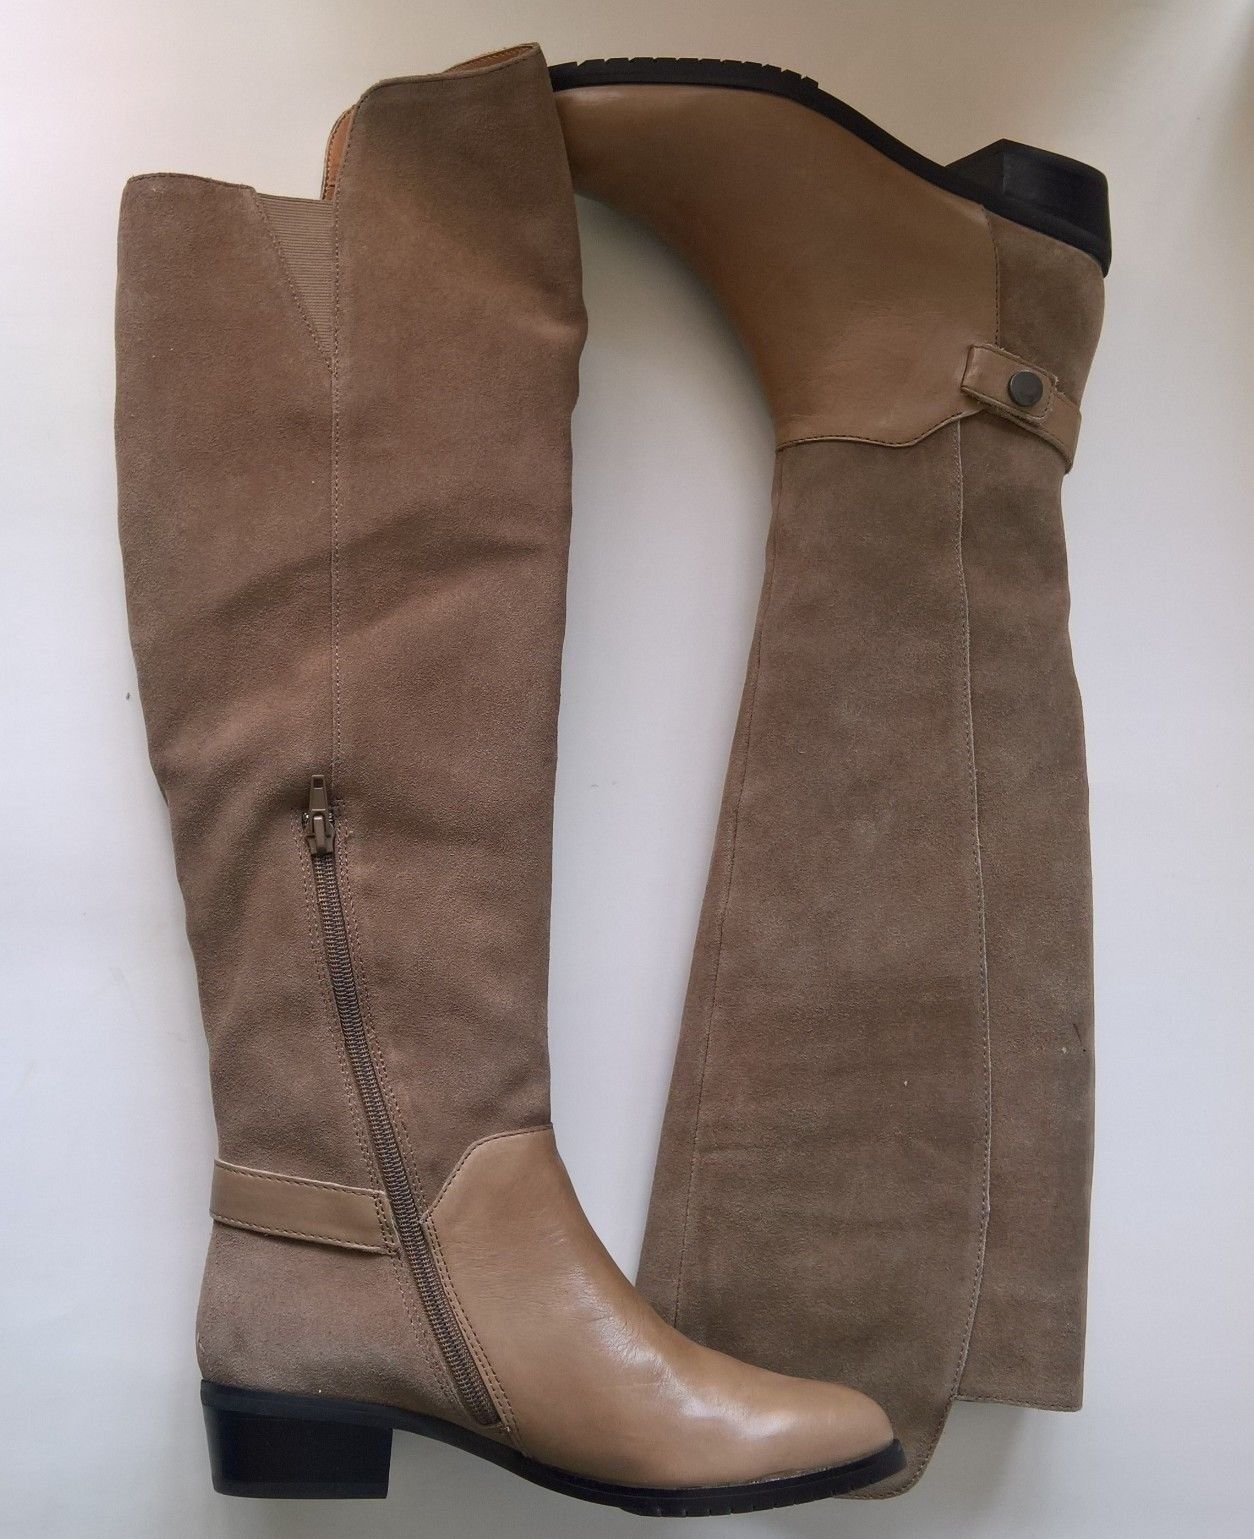 Kelsi Dagger Vlad Taupe Suede Leather Polished Calf Tall boots Size 6